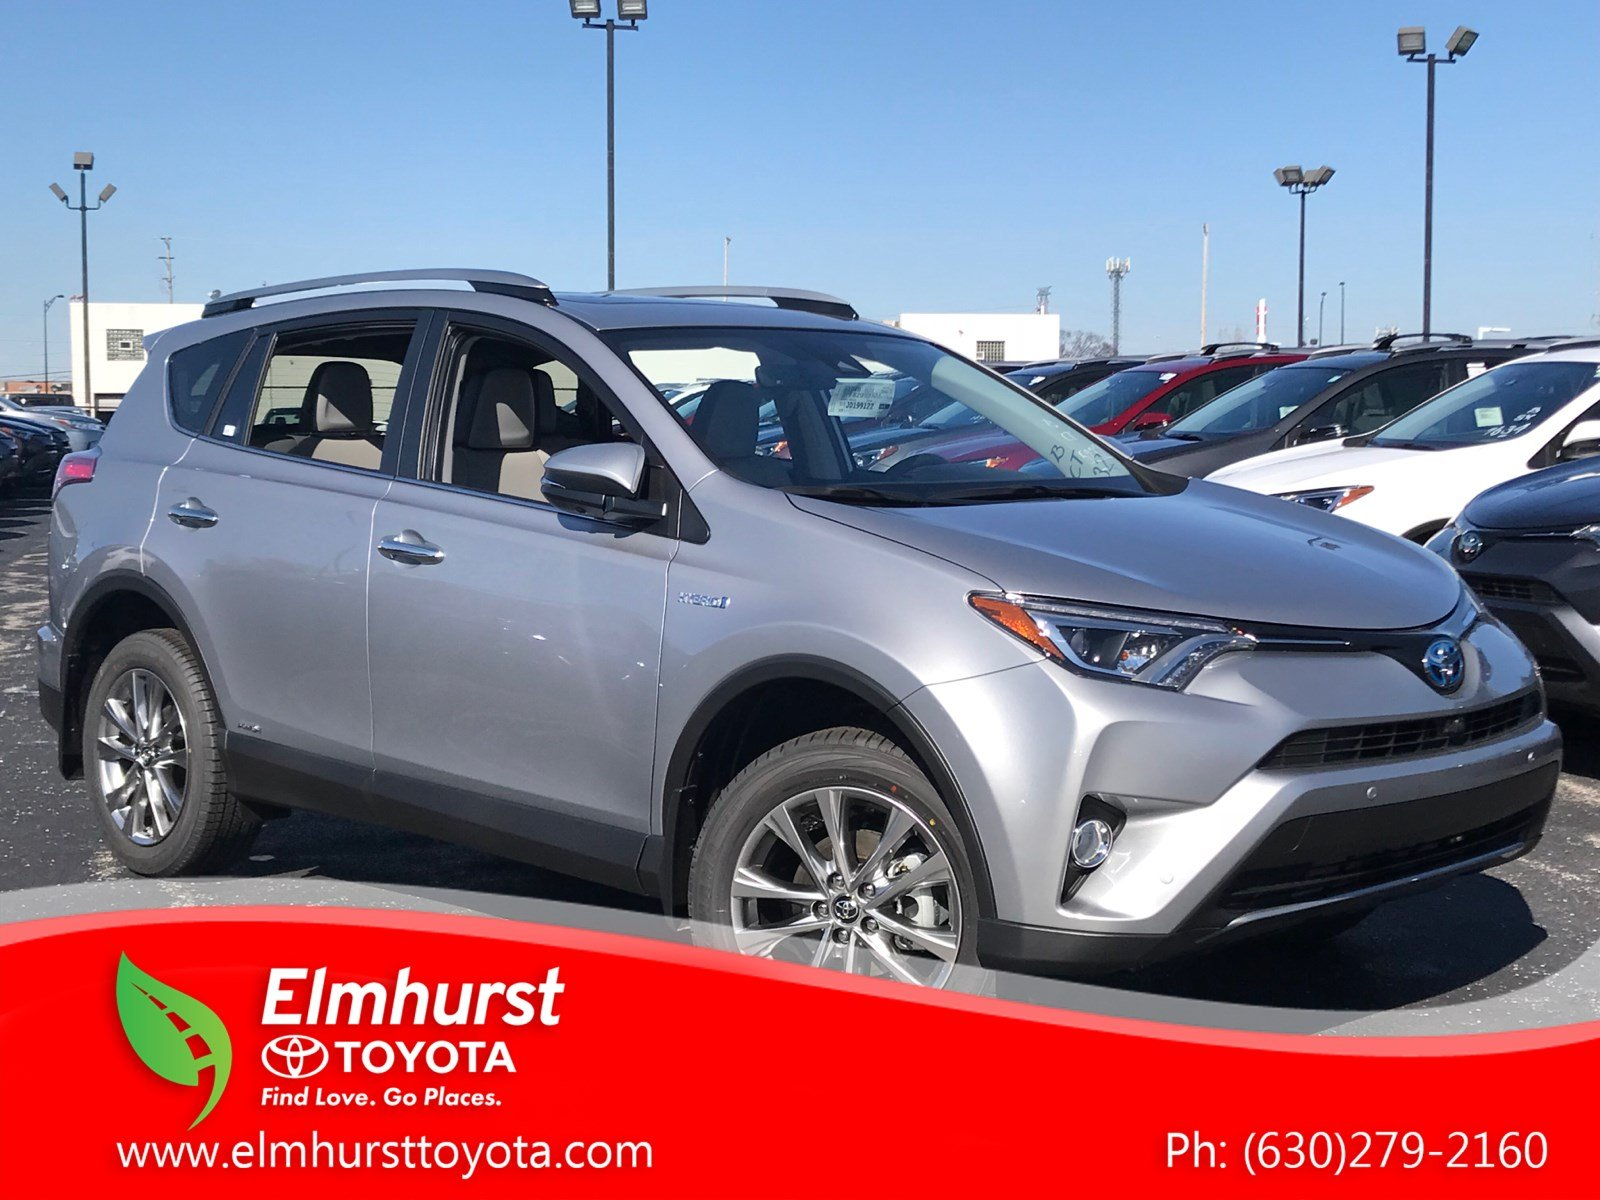 Toyota RAV4 Service Manual: Headlight dimmer switch